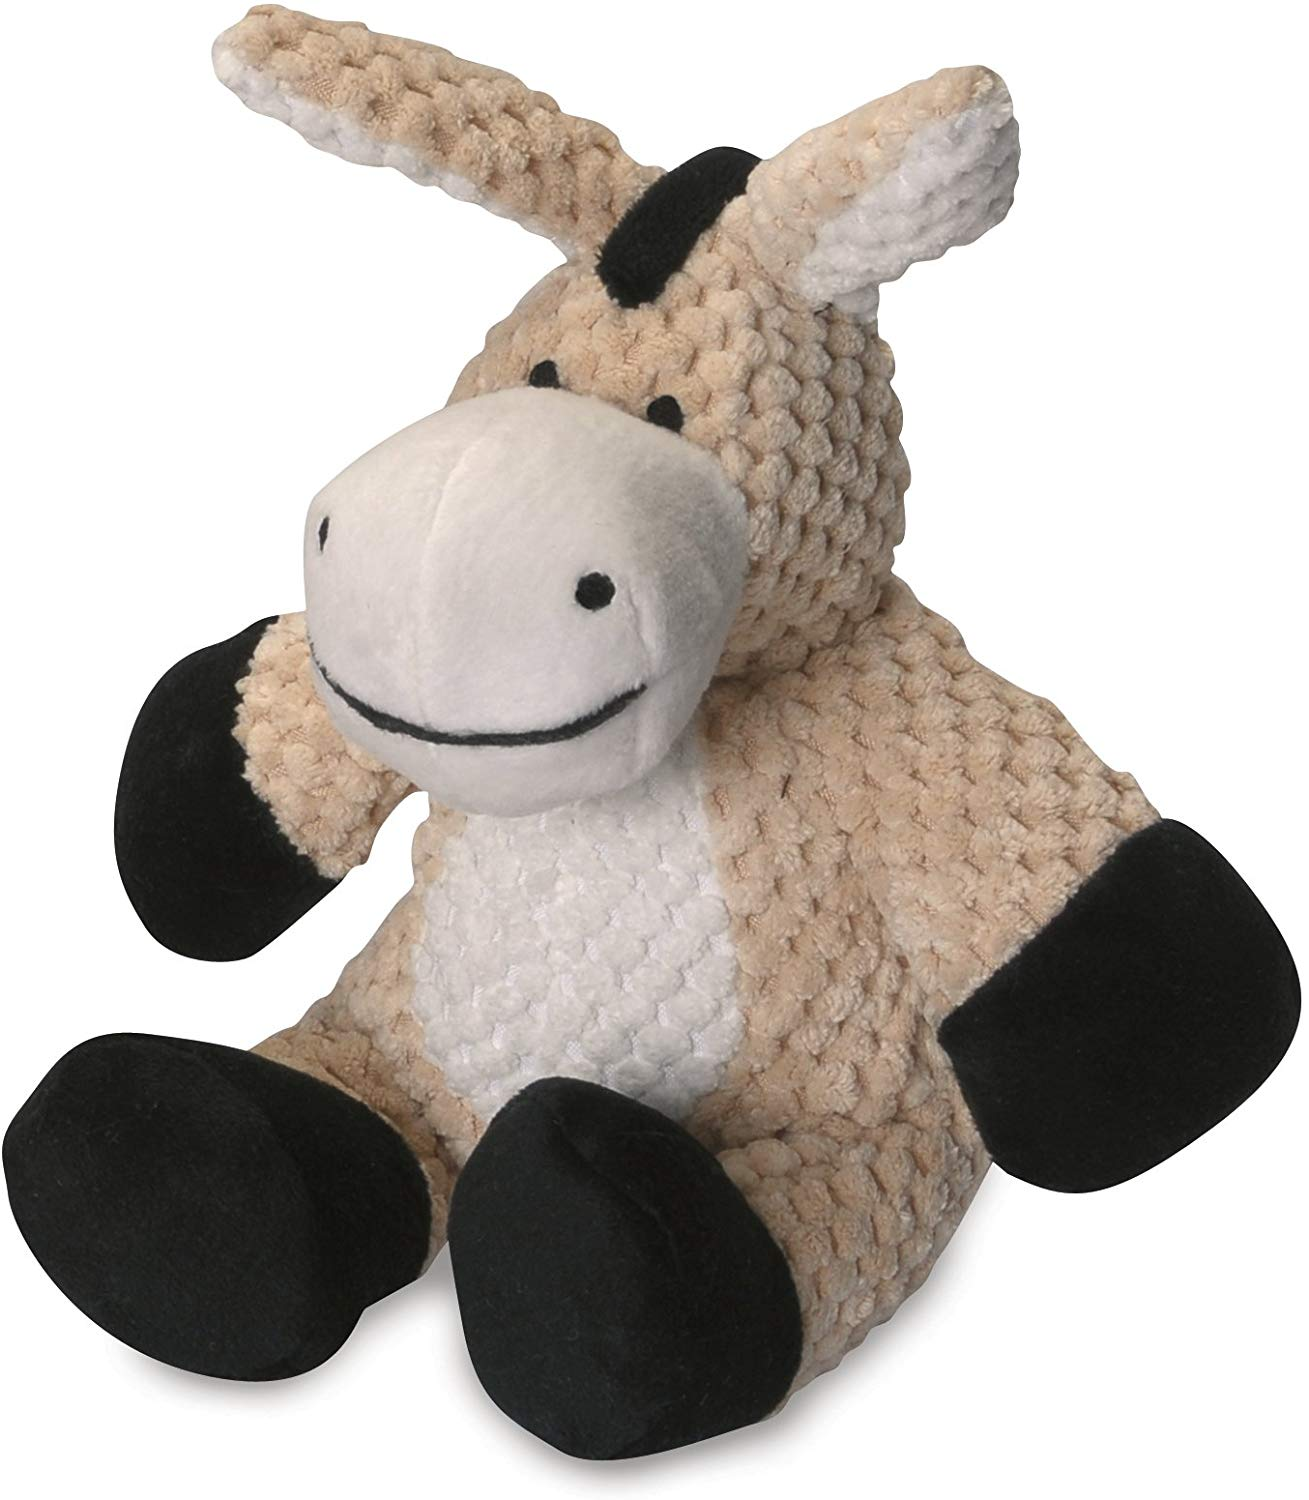 GoDog Checkers Donkey with Chew Guard Dog Toy, Small